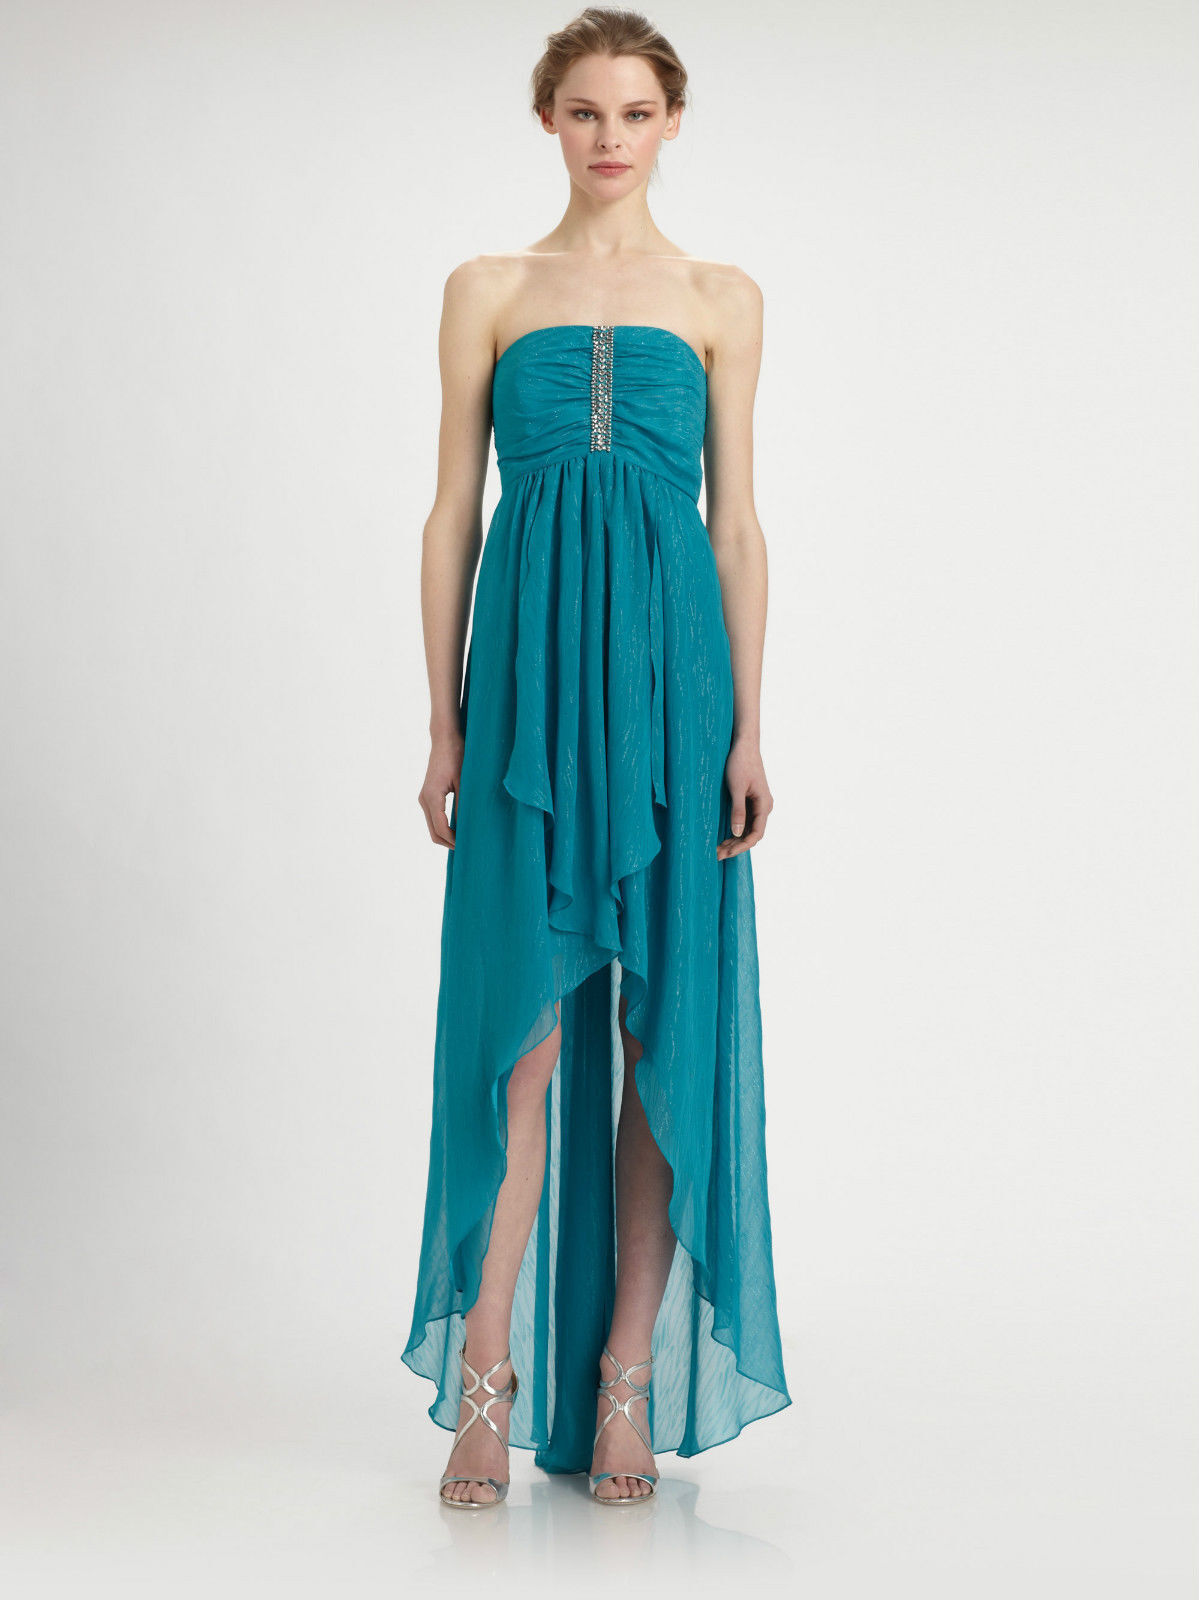 LAUNDRY  395 NEW Sexy Aqua Embellished Strapless High-Low Hem Gown Dress 10 QCO